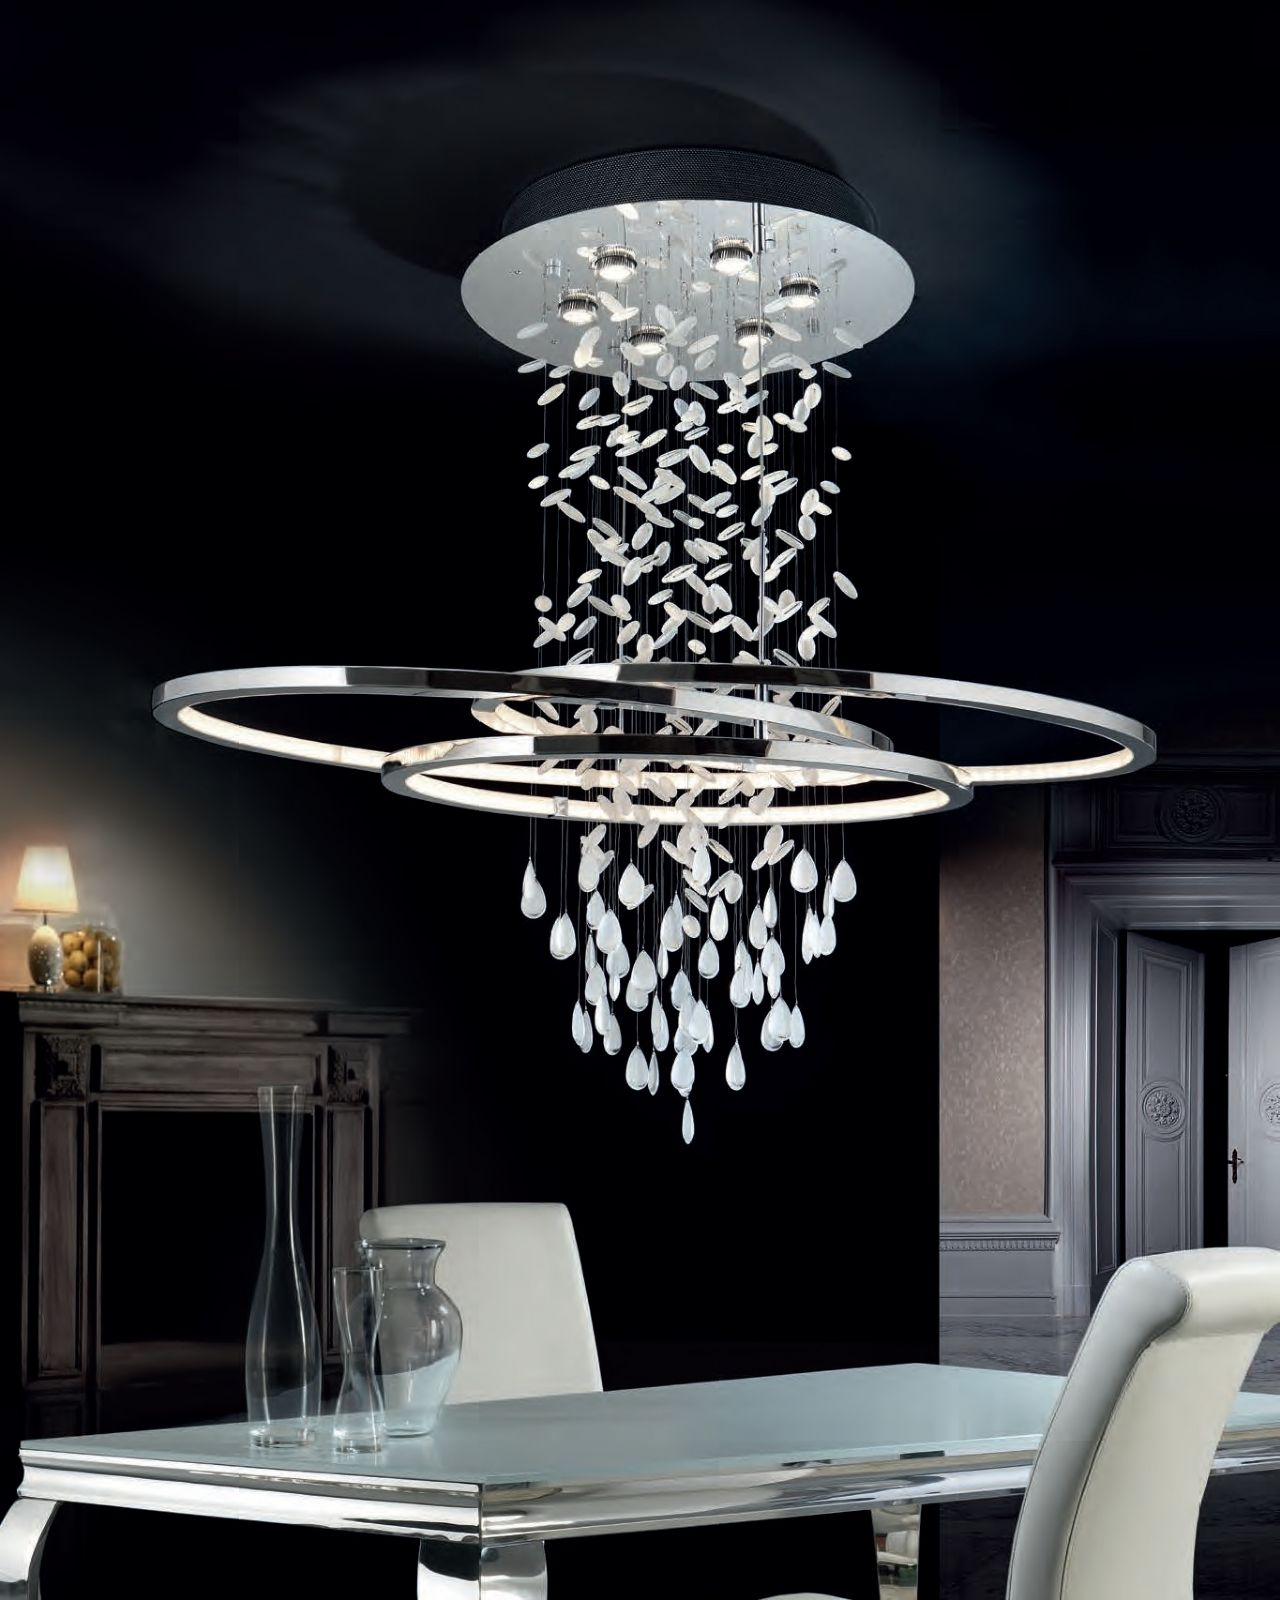 Asymmetric Oval Long Drop Led Light Perfect For